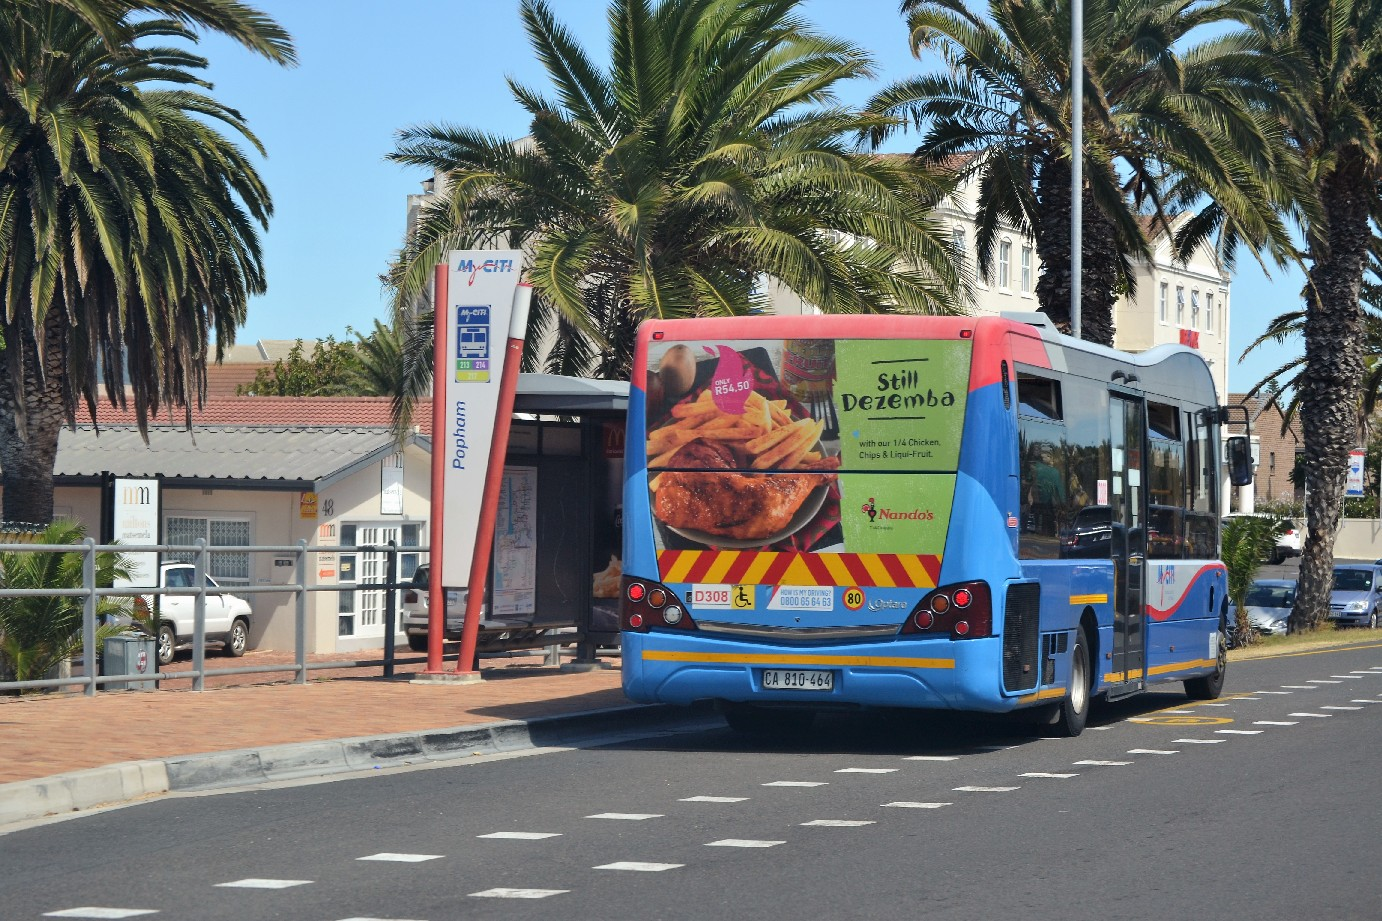 Nando's takes the bus in Cape Town